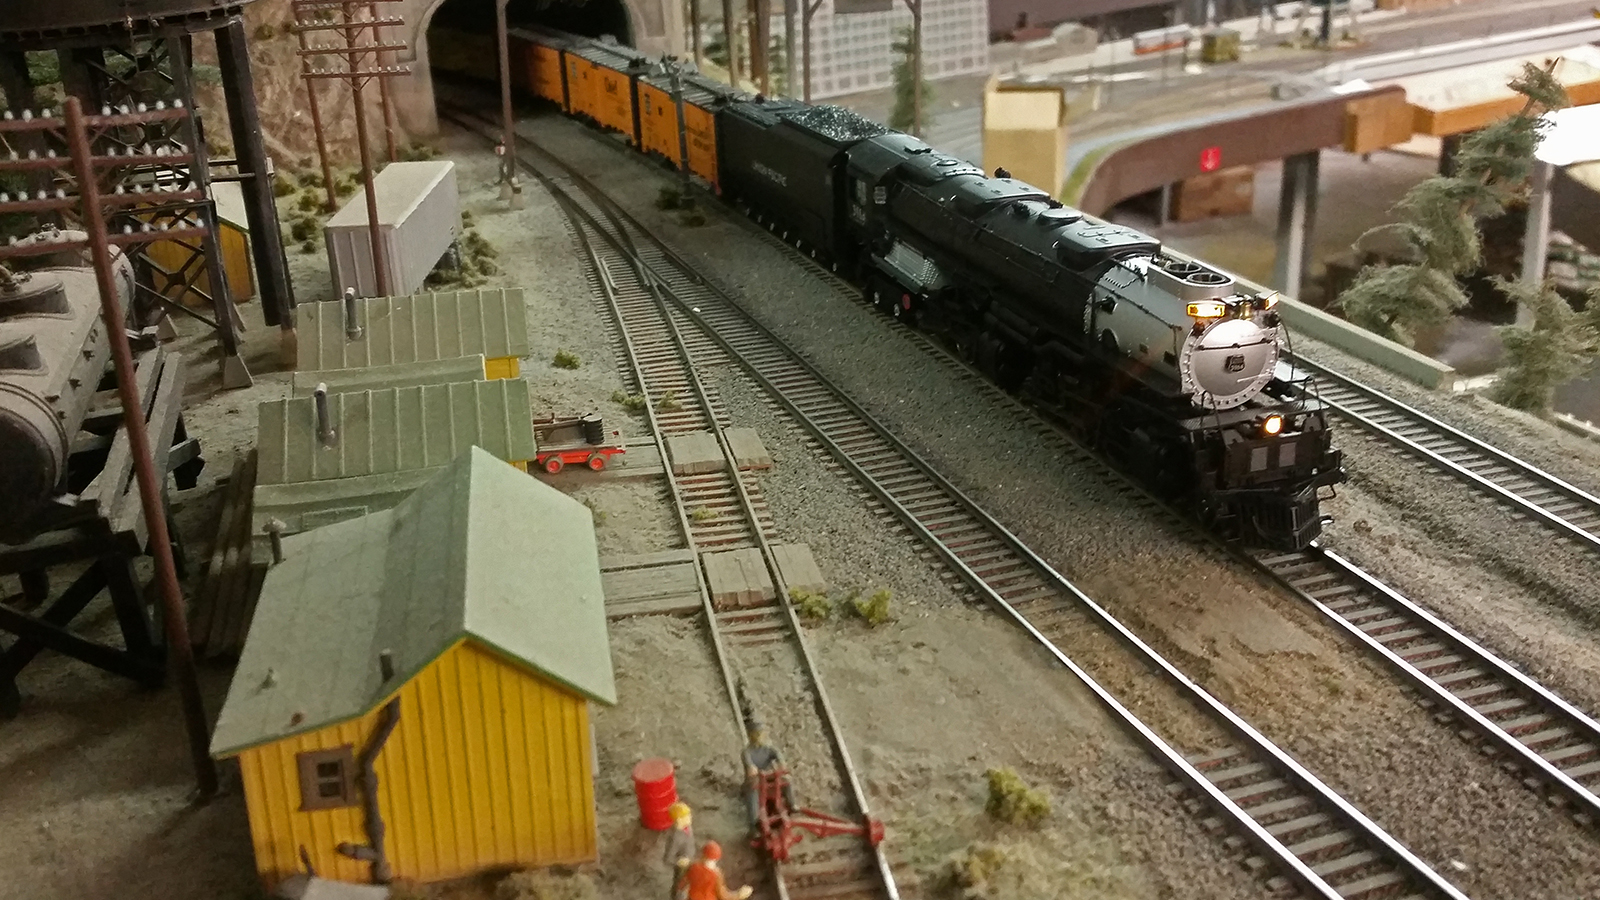 Dcc Conversion Model Trains Atlas Railroad Wiring Train Turntable Full Of Which It Is I Dont Have One Those Handy So Here Instead A Photo Chris Holts Beautiful Challenger On Reefer